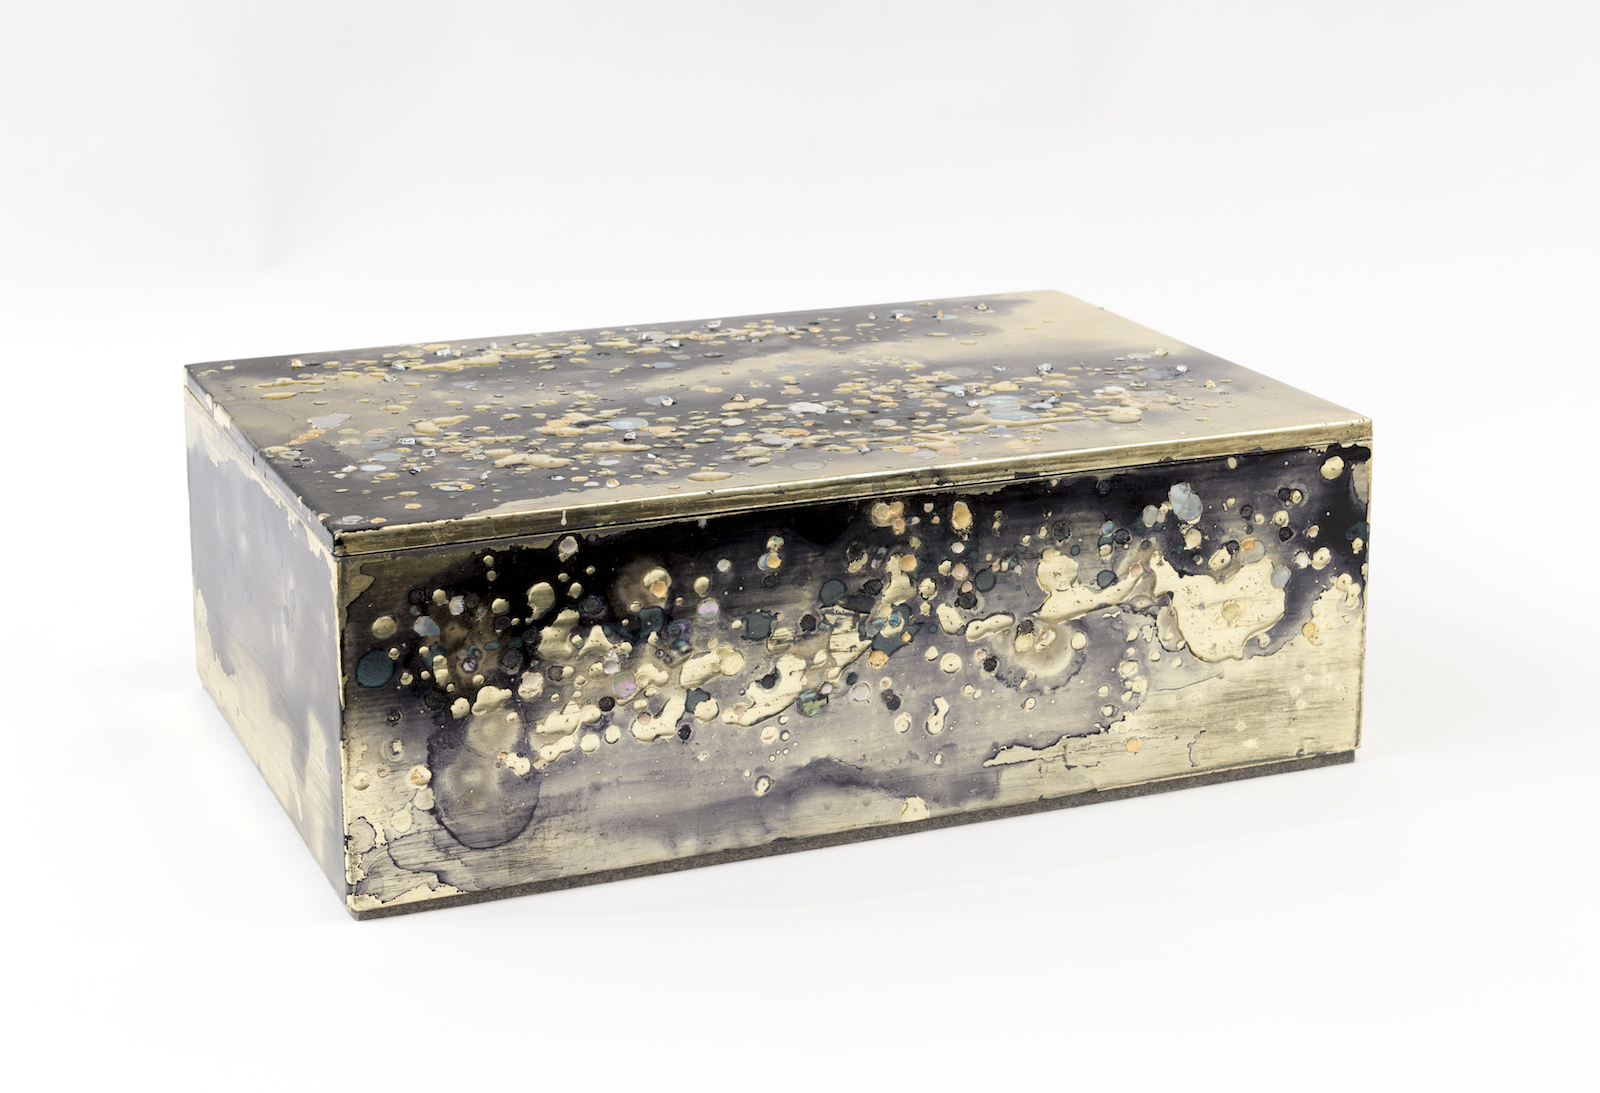 Untitled Pale Gold and Mother of Pearl Box, 2016